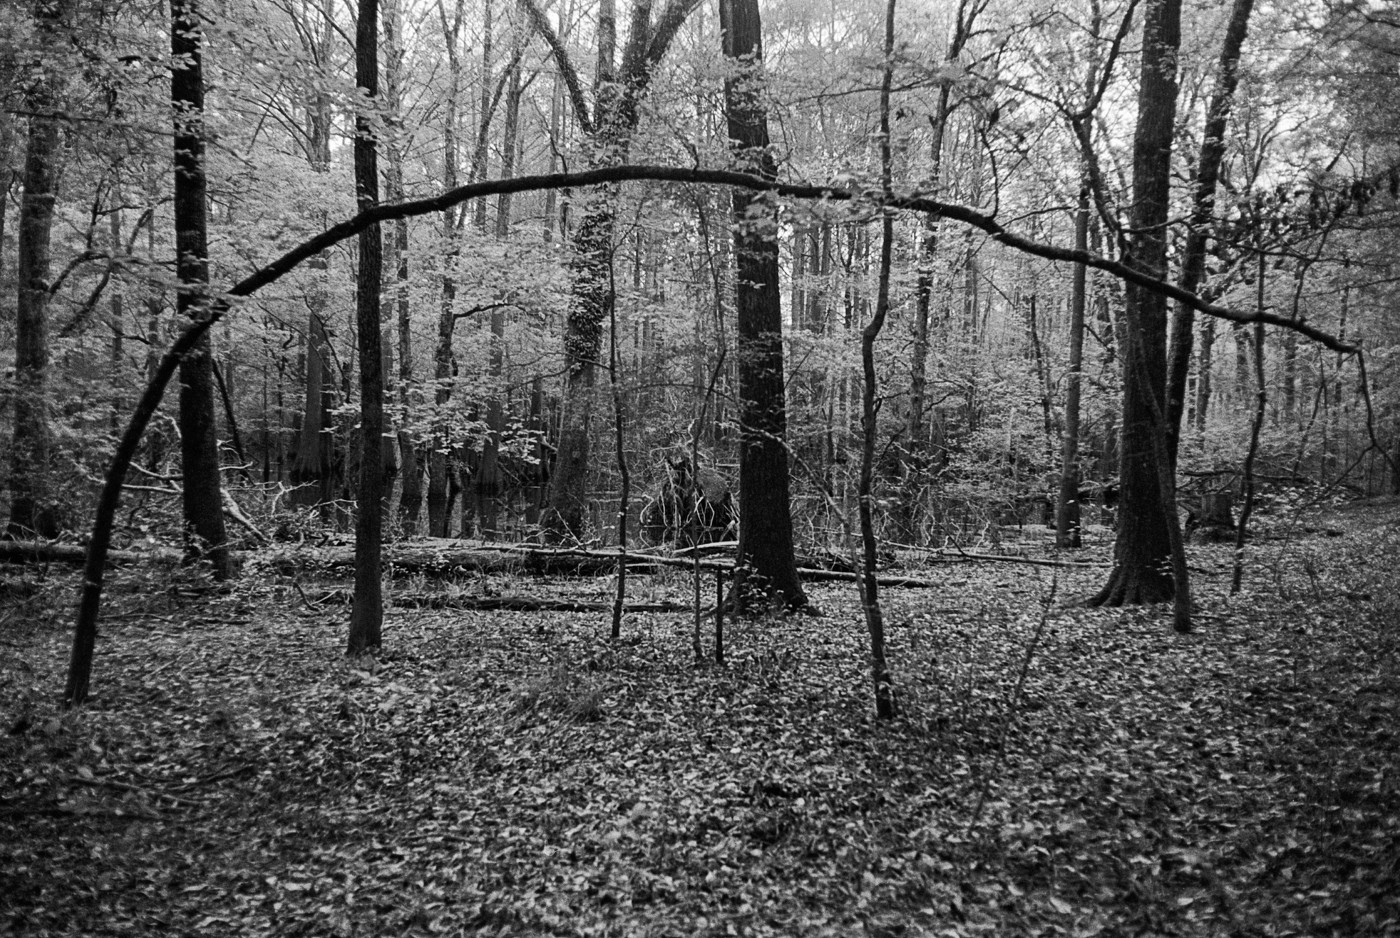 Black and white photograph of trees in a swamp, one bend over across the whole frame